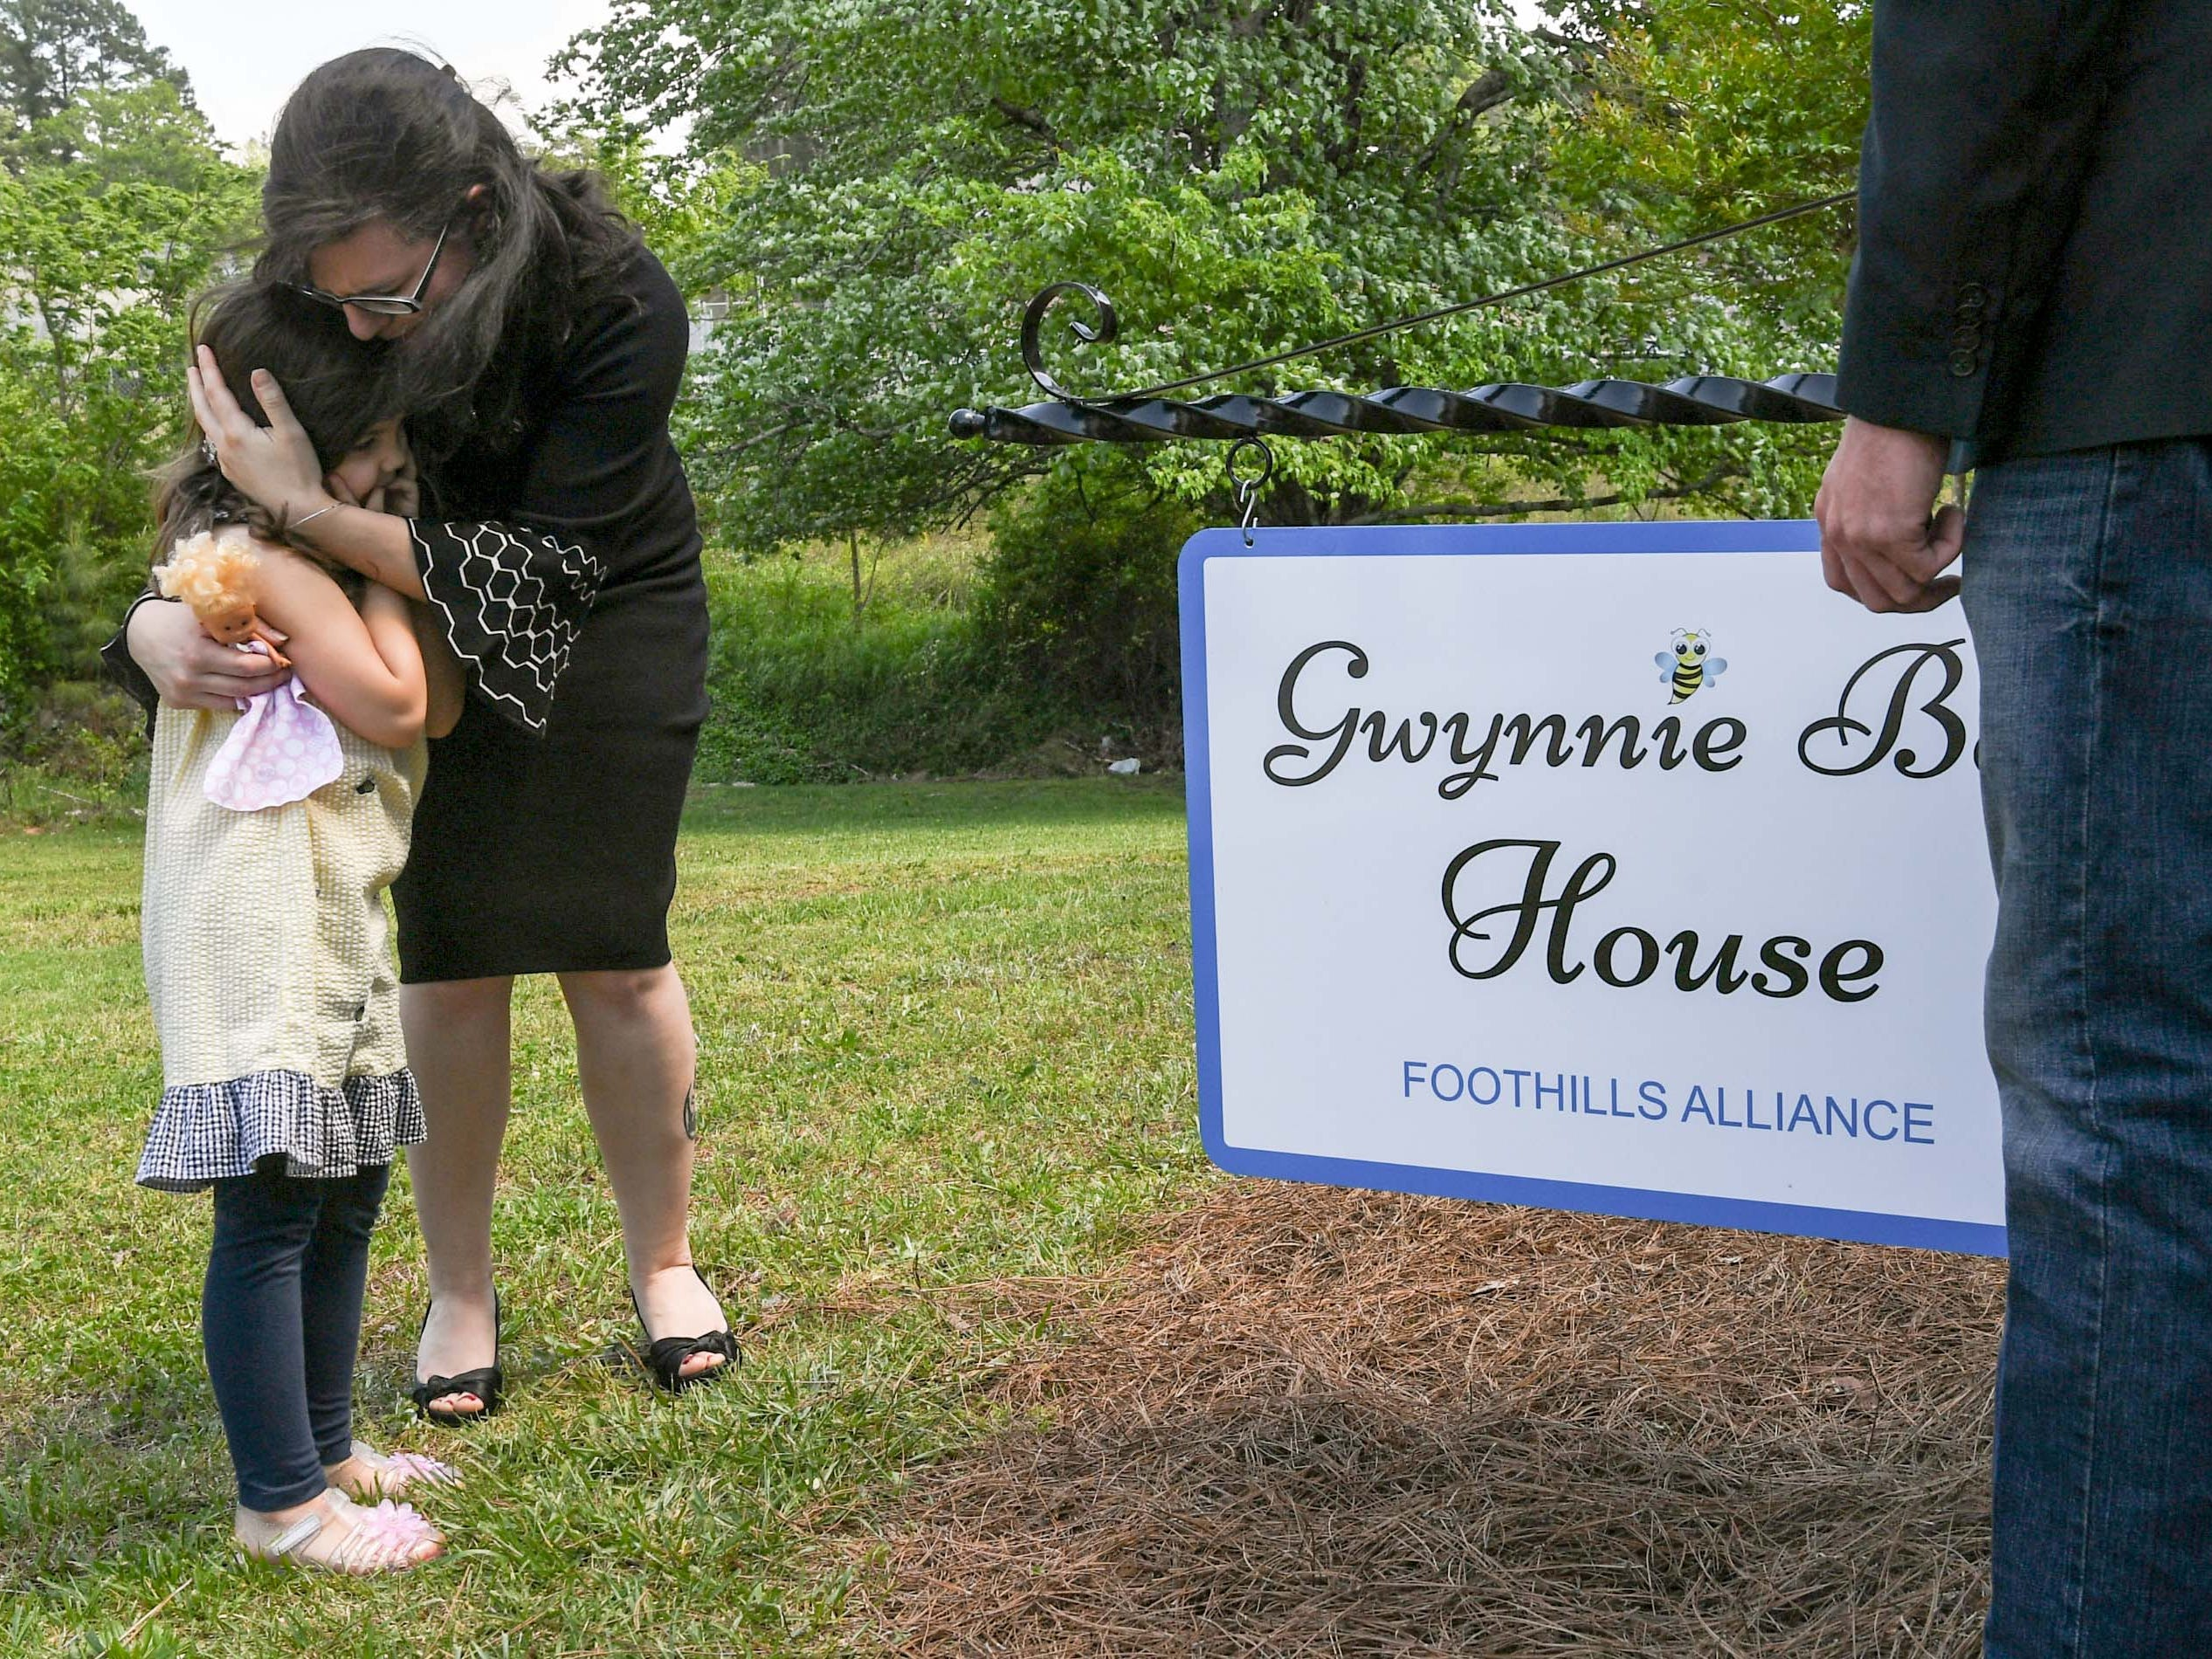 "Ravyn Hammond hugs her daughter Gracie Hess after a sign was unveiled during an office dedication of the Foothills Alliance Oconee County Gwynnie Bee House in Walhalla Friday. Foothills Alliance, who with partners provides education, advocacy, and treatment services to prevent sexual assault trauma and child abuse services in Anderson and Oconee Counties, branched out from their Anderson office with an office in Walhalla last August. Hammond lost her daughter Gwynne Ann-Marie Hess, ""Gwynnie Bee"", in 2017 from child abuse, and the office was renamed after her Friday in the presence of family, law enforcement, Sen. Thomas Alexander, Oconee County Sheriff Michael Crenshaw, and Tenth Circuit Solicitor David Wagner."